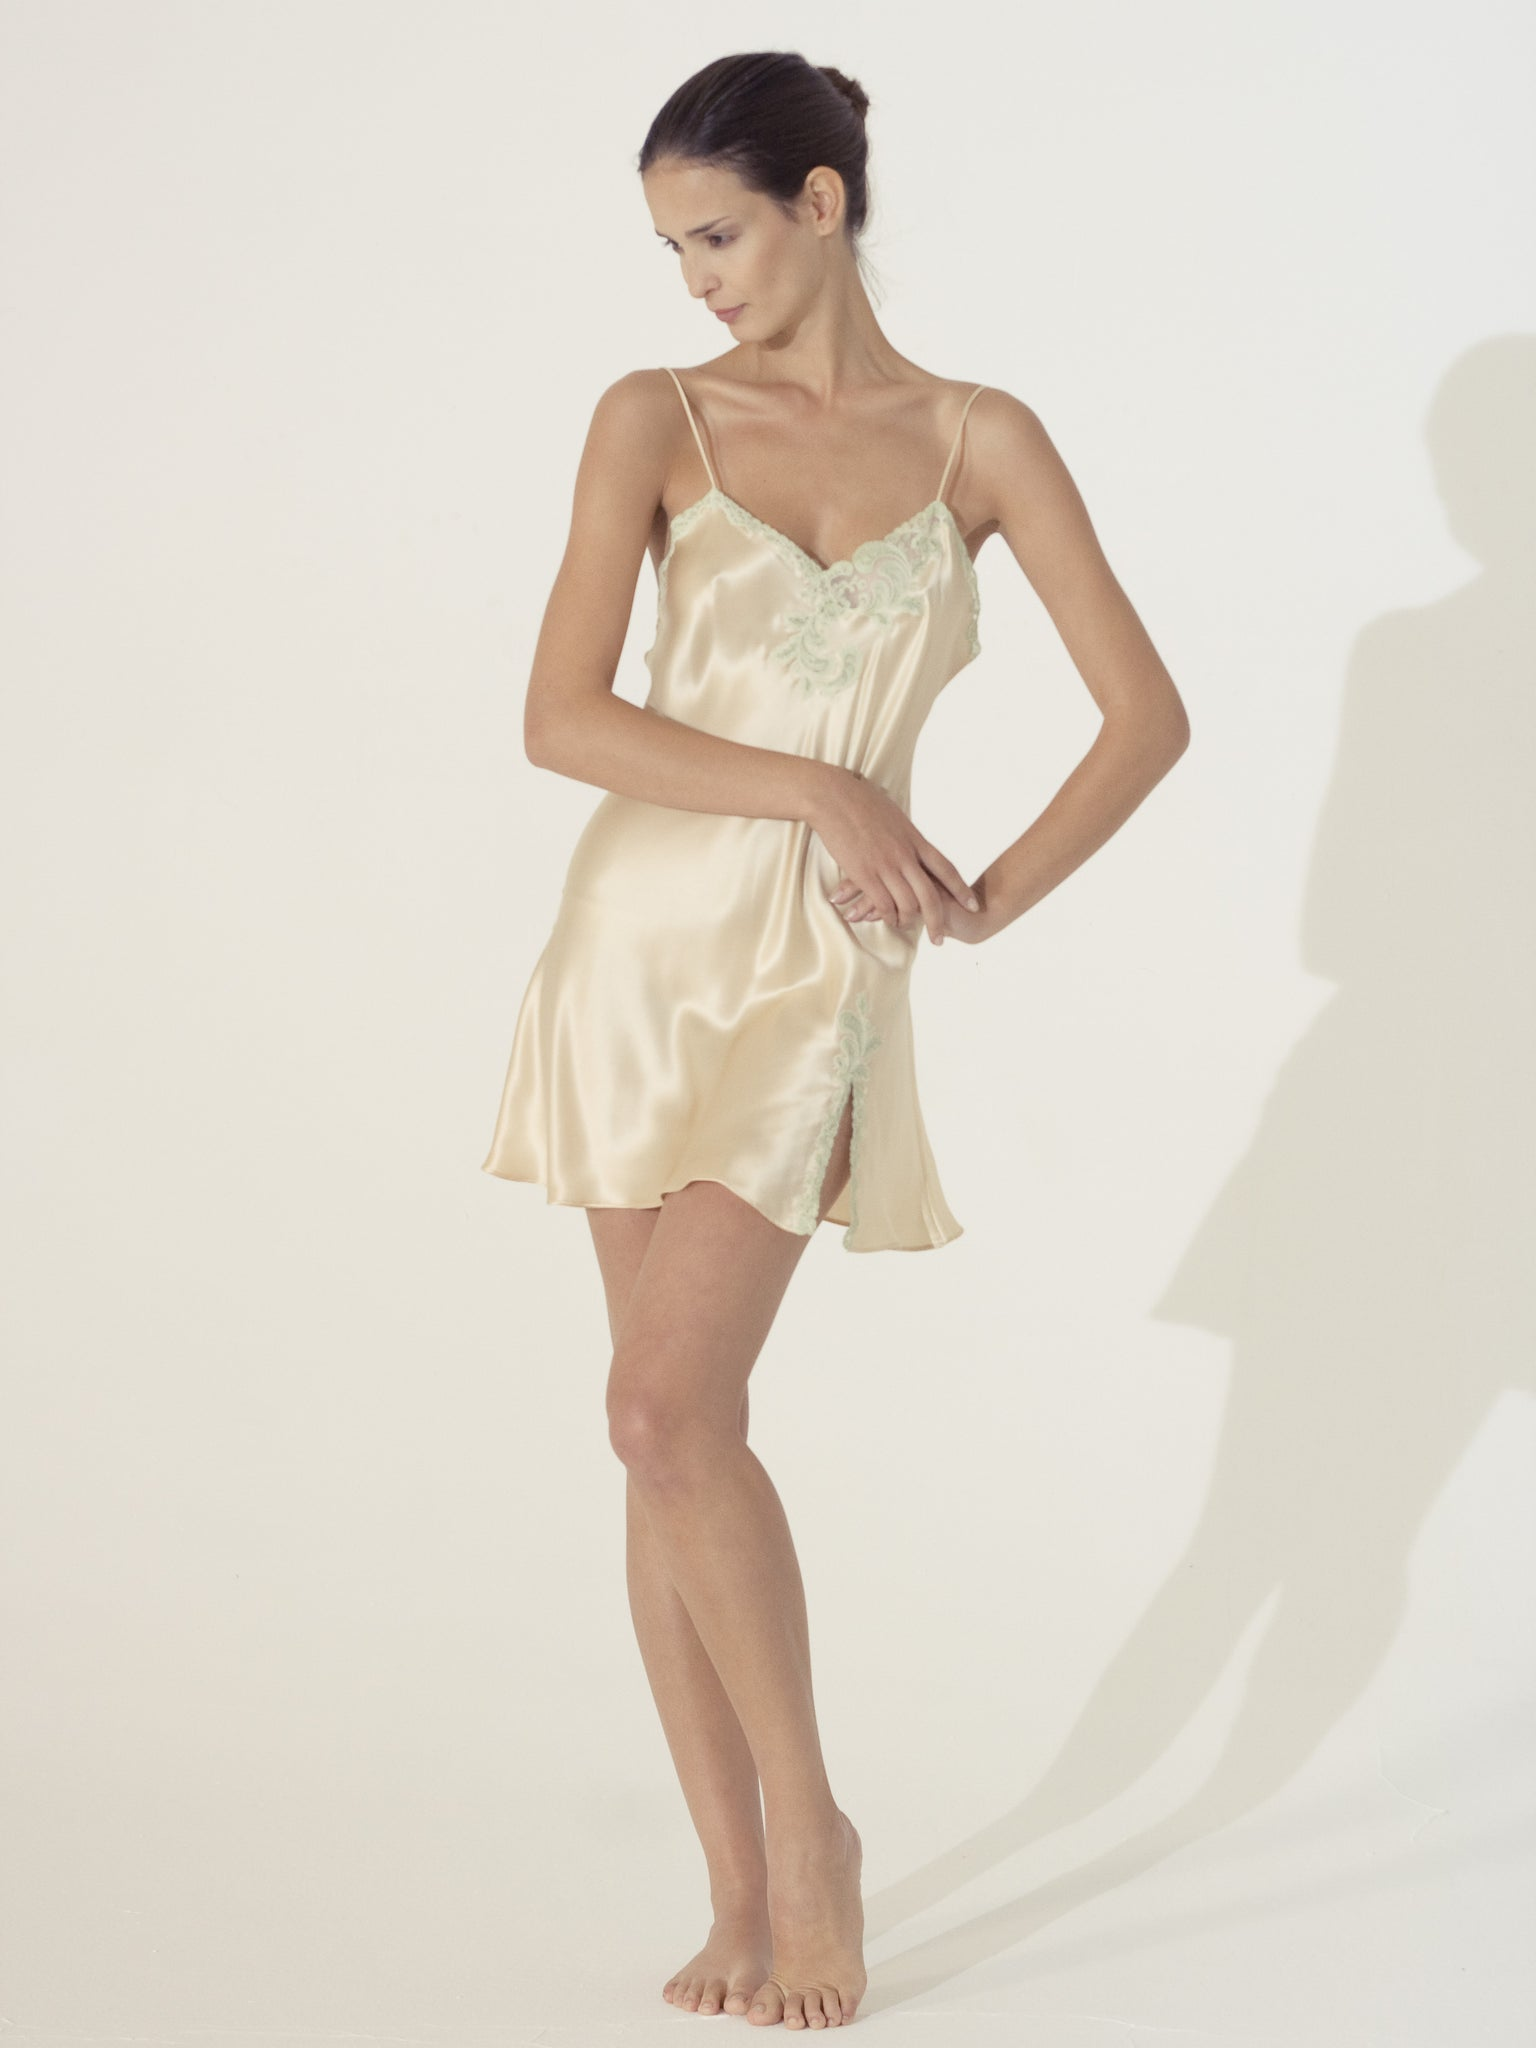 Silk Short Nightgown - Flora Lastraioli Shop Online